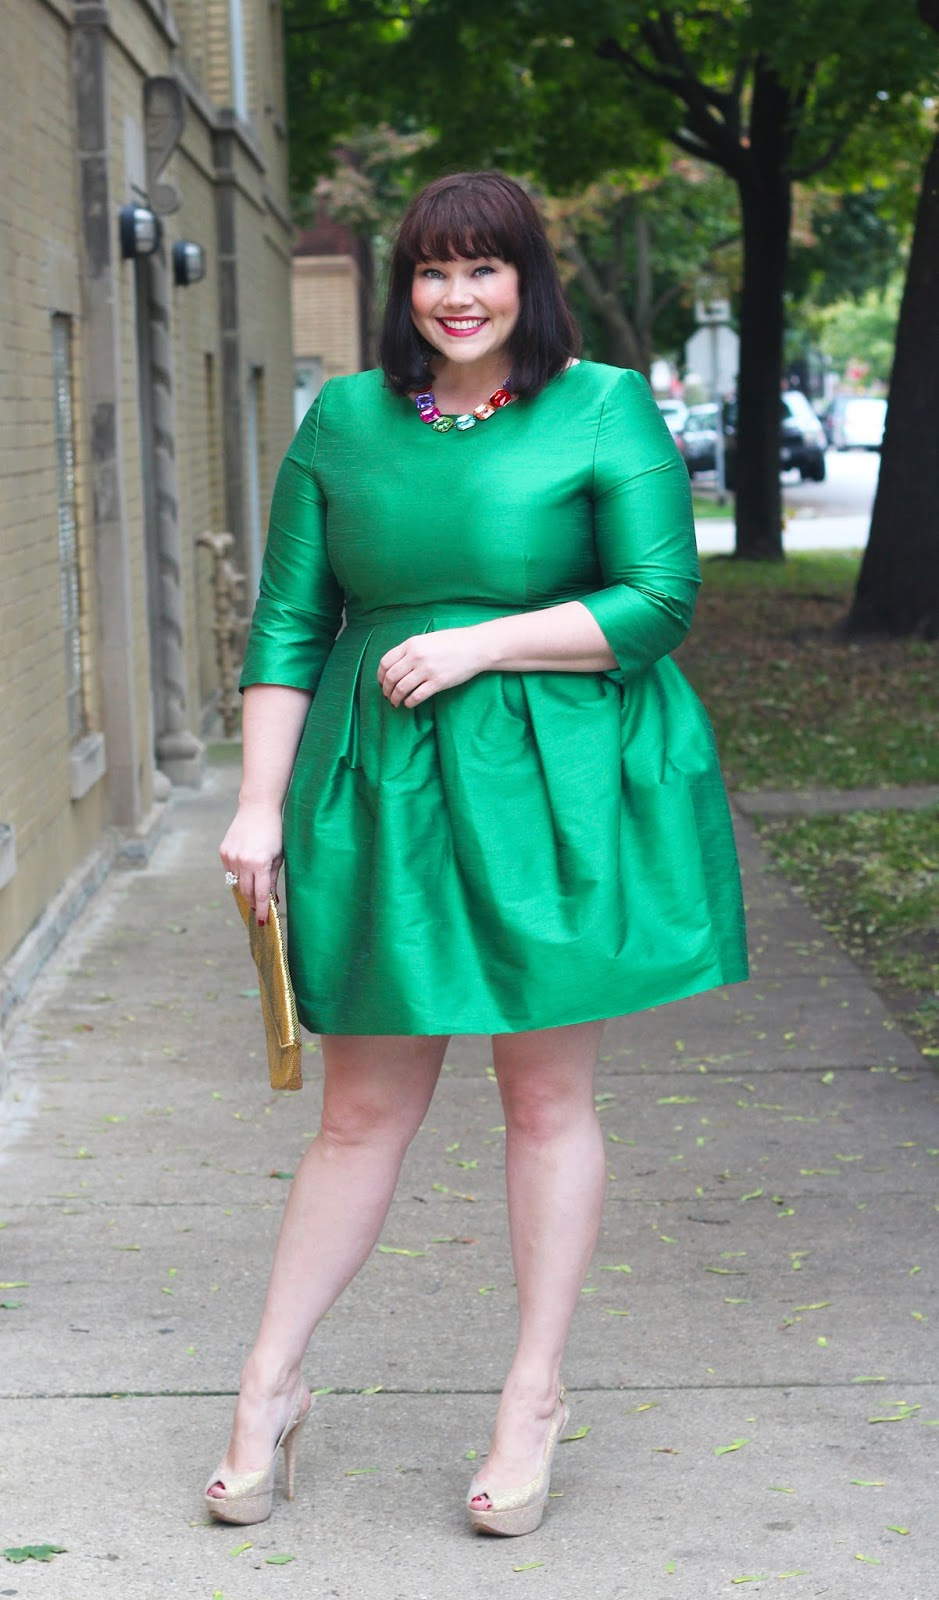 b0b66cb8 Plus size blogger Amber from Style Plus Curves wears a plus size custom  dress in emerald